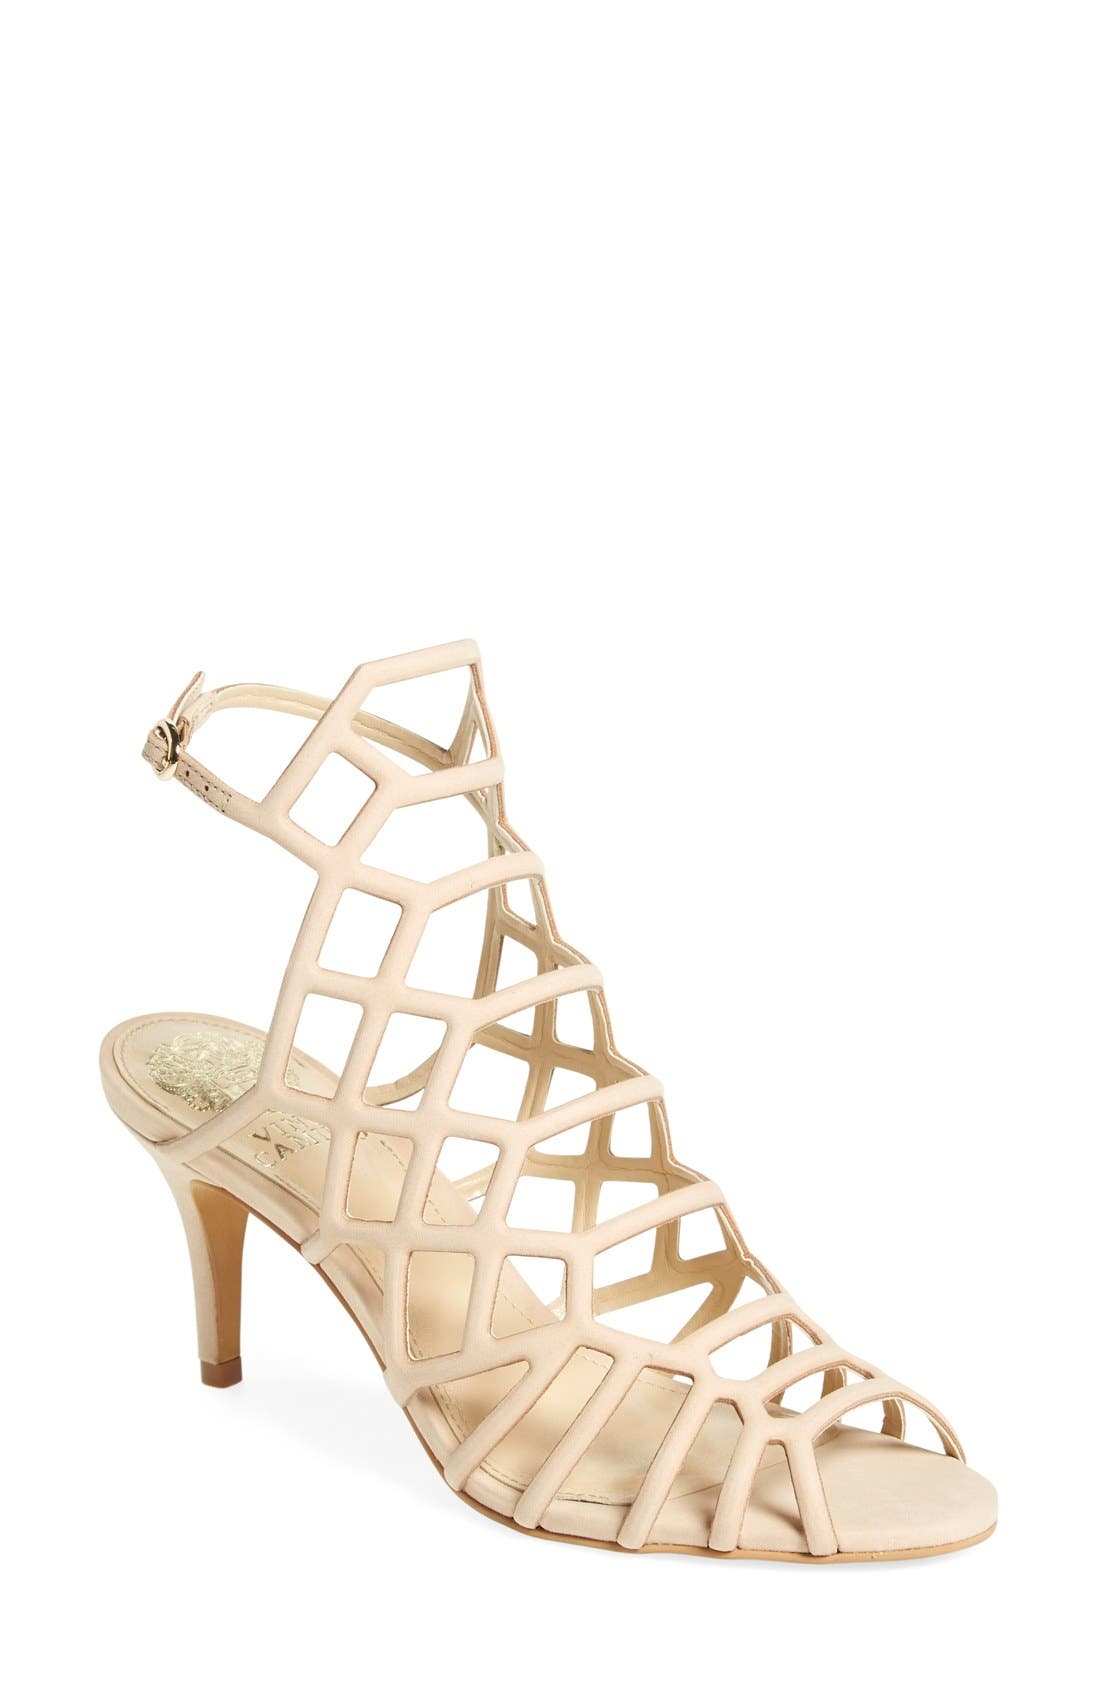 Alternate Image 1 Selected - Vince Camuto 'Paxton' Slingback Sandal (Women)